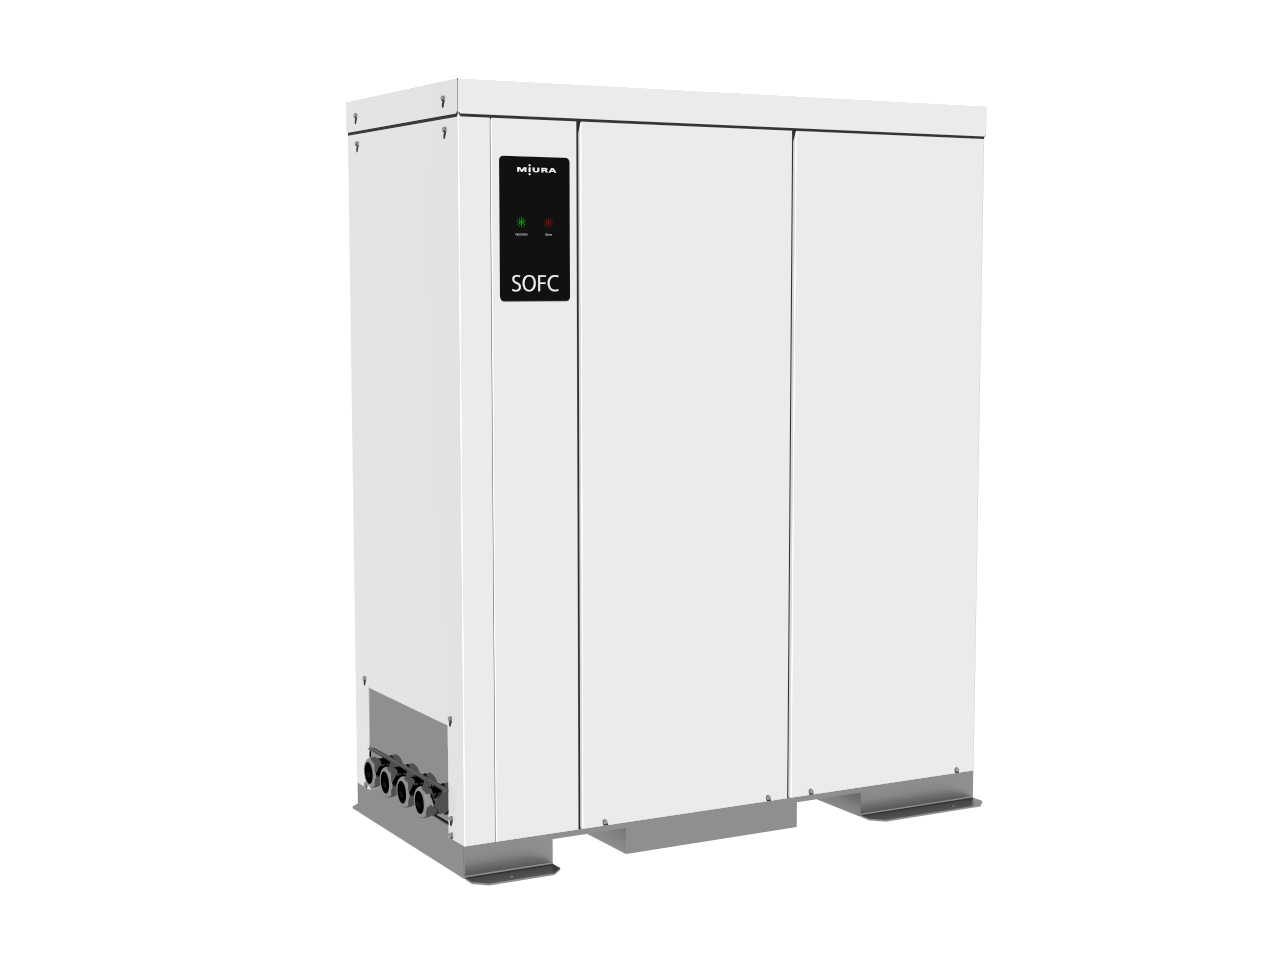 Miura Co Launches Fuel Cell Product in Japan With Ceres